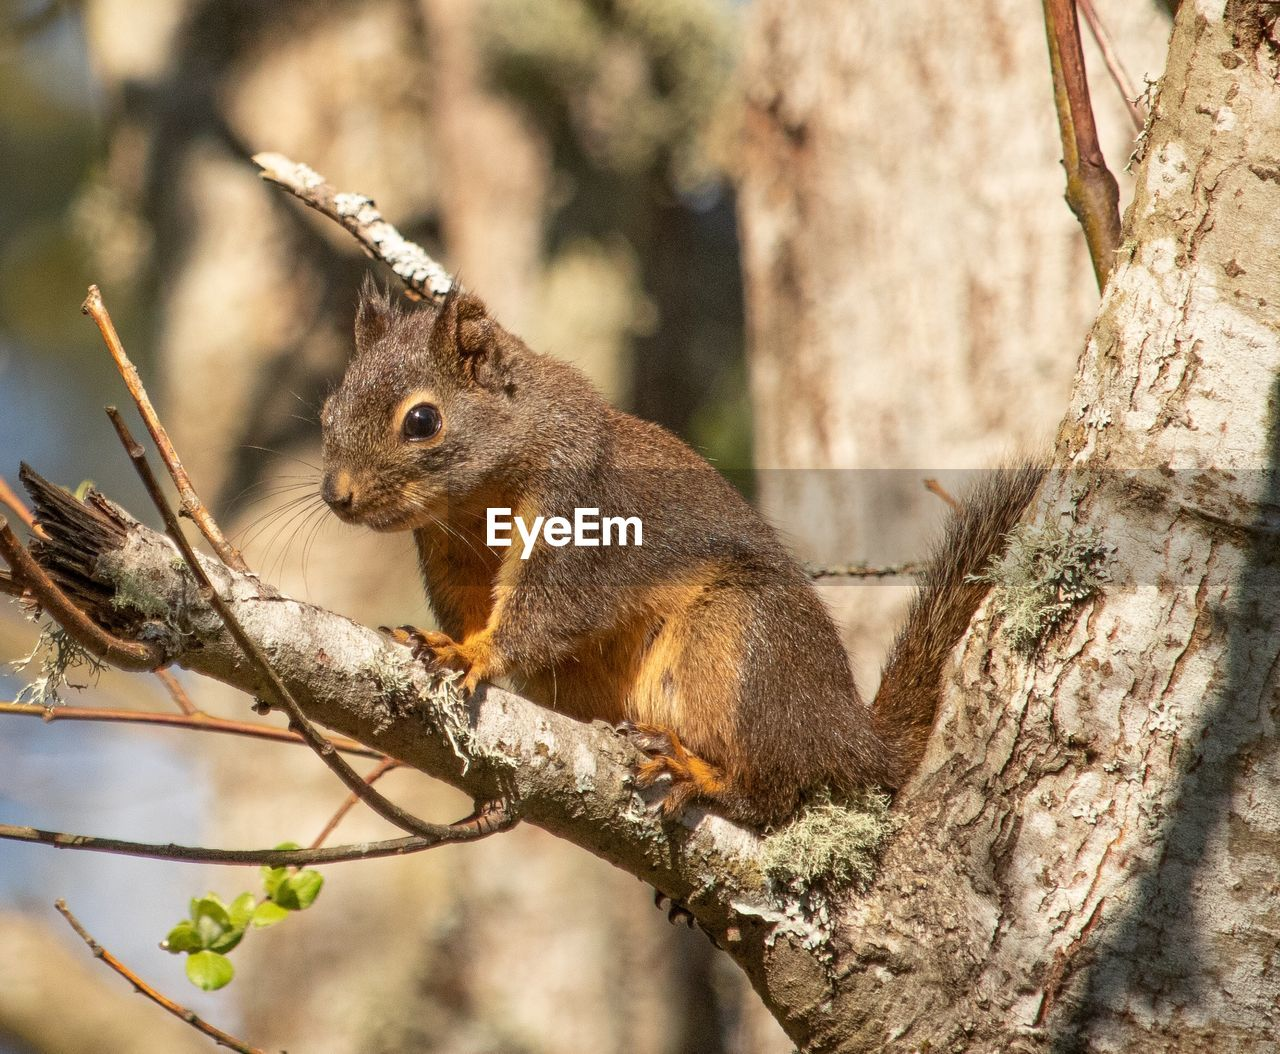 animal, animal themes, animal wildlife, tree, mammal, animals in the wild, rodent, one animal, branch, squirrel, plant, vertebrate, tree trunk, nature, focus on foreground, trunk, day, no people, outdoors, close-up